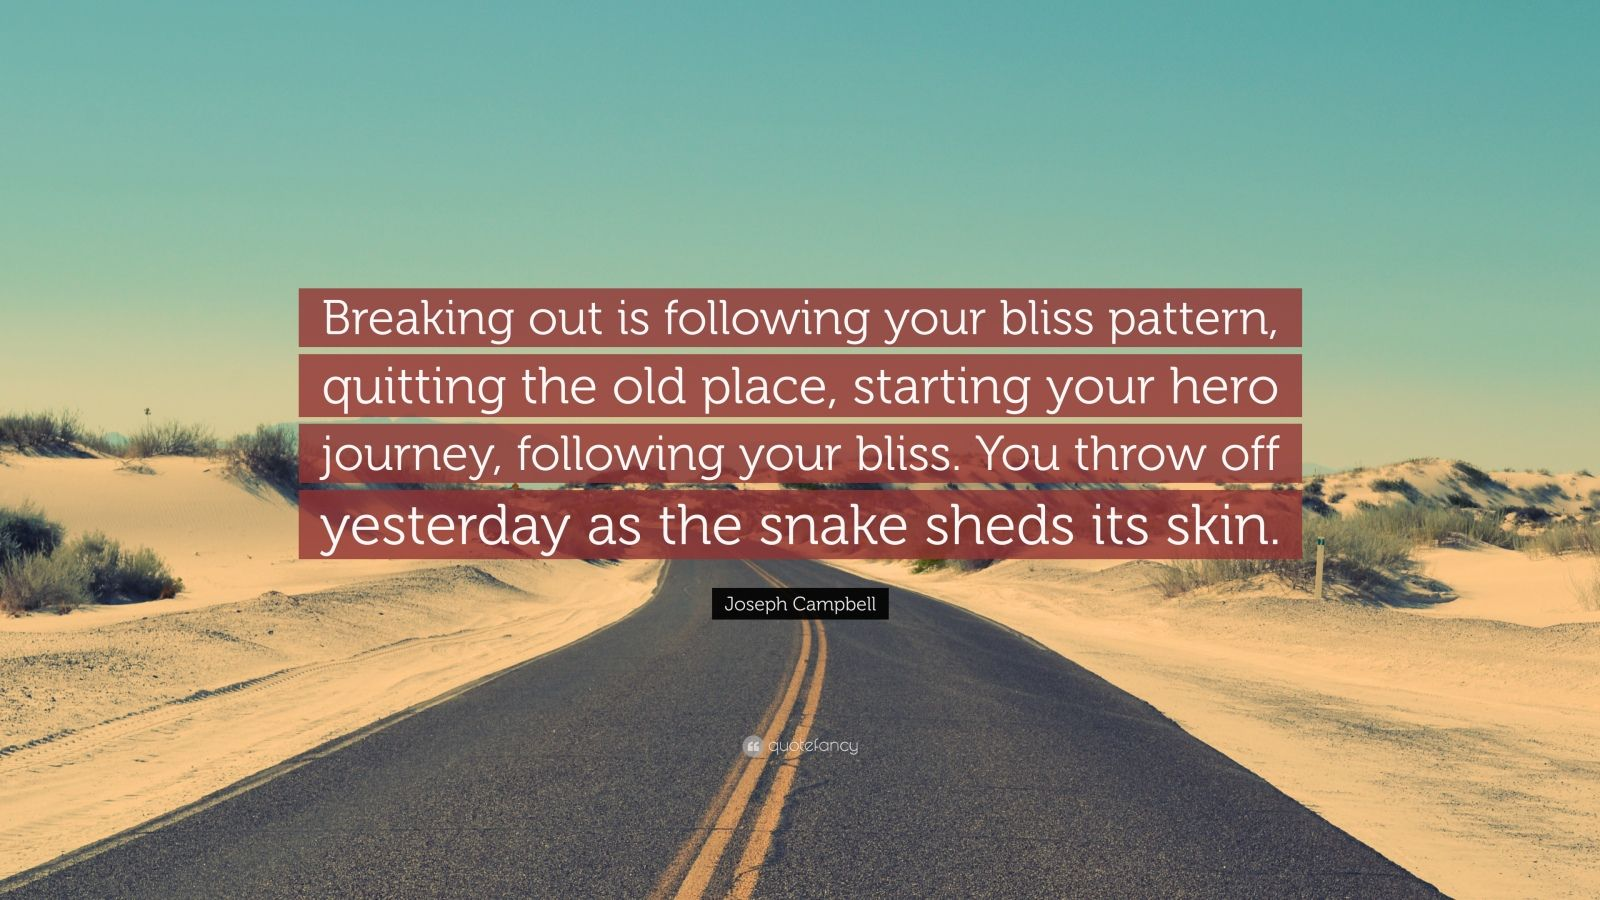 """Joseph Campbell Quote: """"Breaking out is following your bliss pattern, quitting the old place, starting your hero journey, following your bliss. You throw off yesterday as the snake sheds its skin."""""""